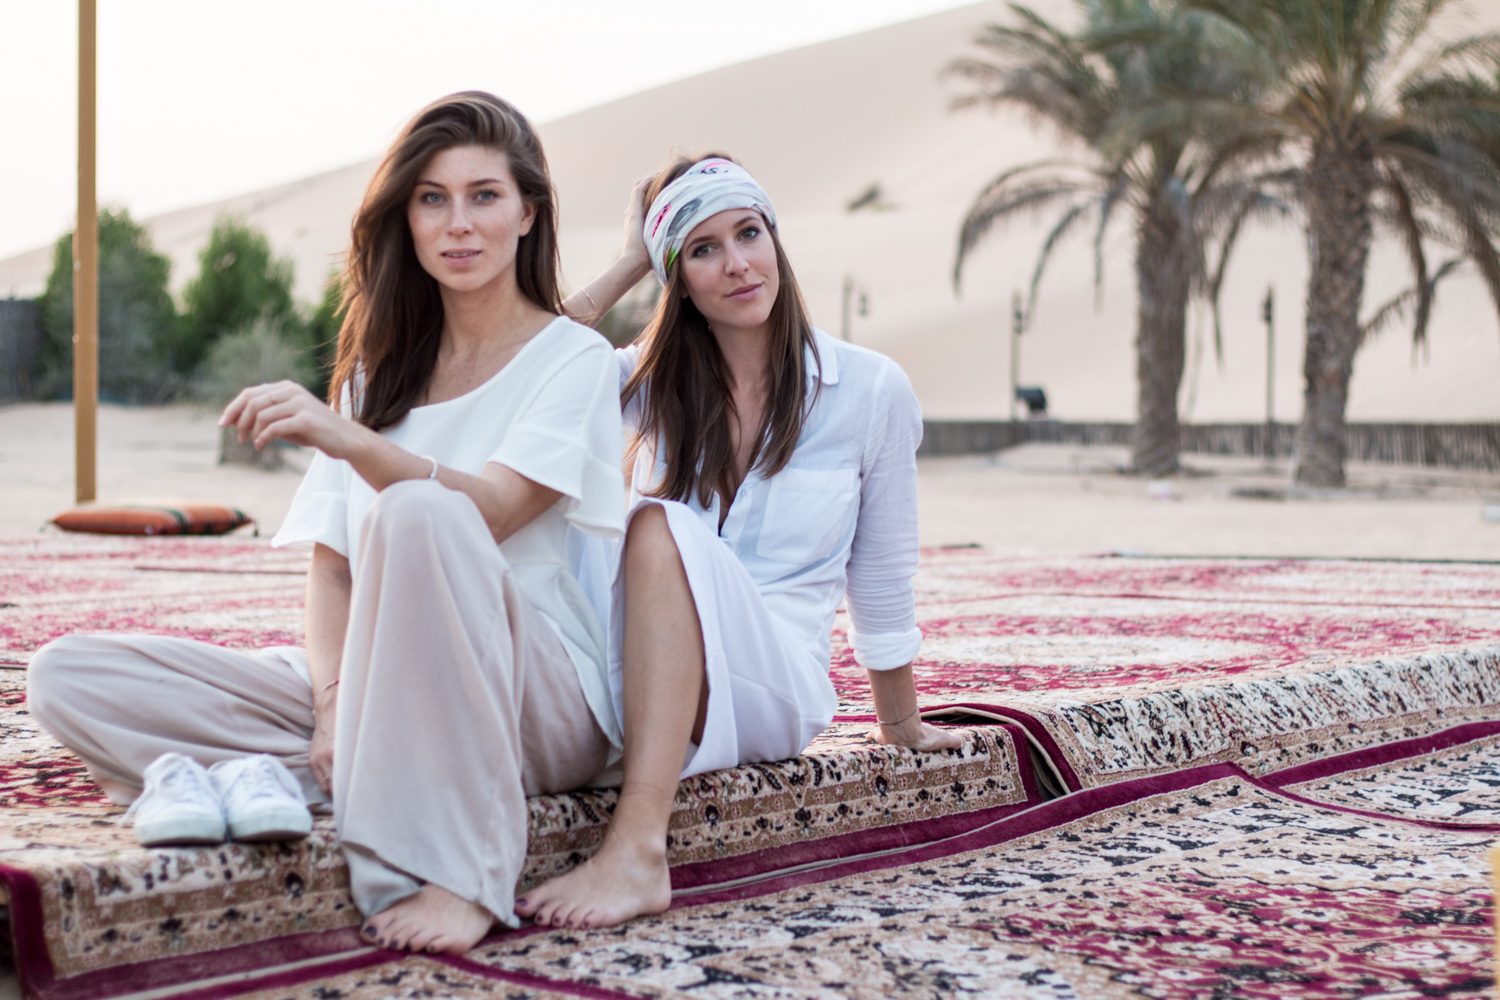 Heart to Heart: Abu Dhabi | The Daily Dose